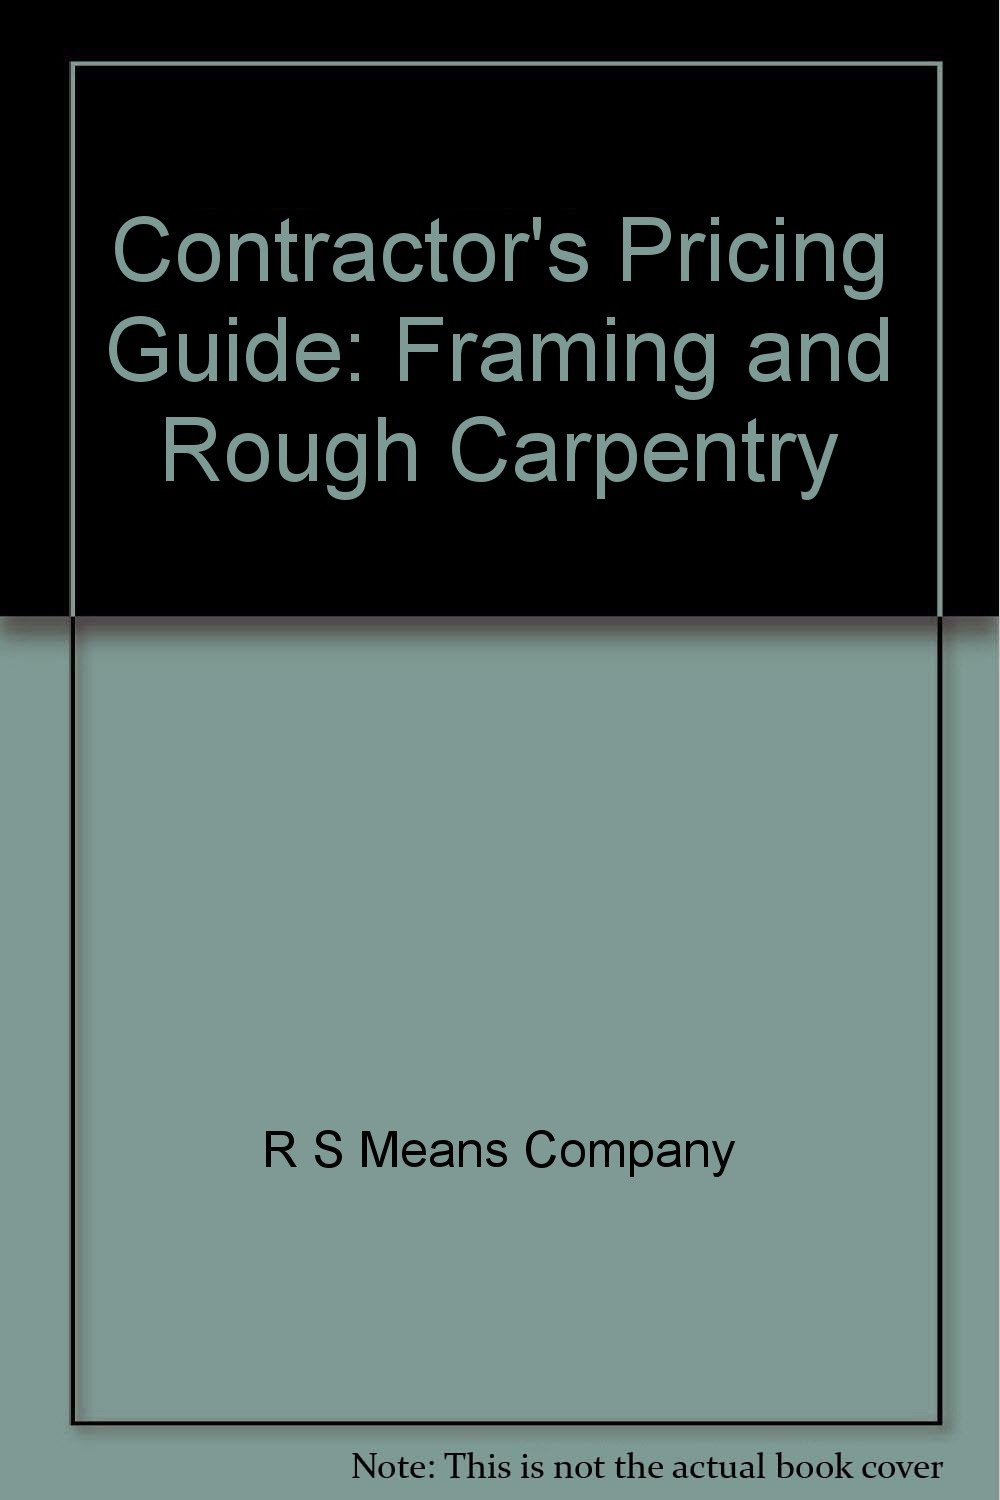 Contractor's Pricing Guide: Framing and Rough Carpentry: R S Means Company:  9780876295212: Amazon.com: Books